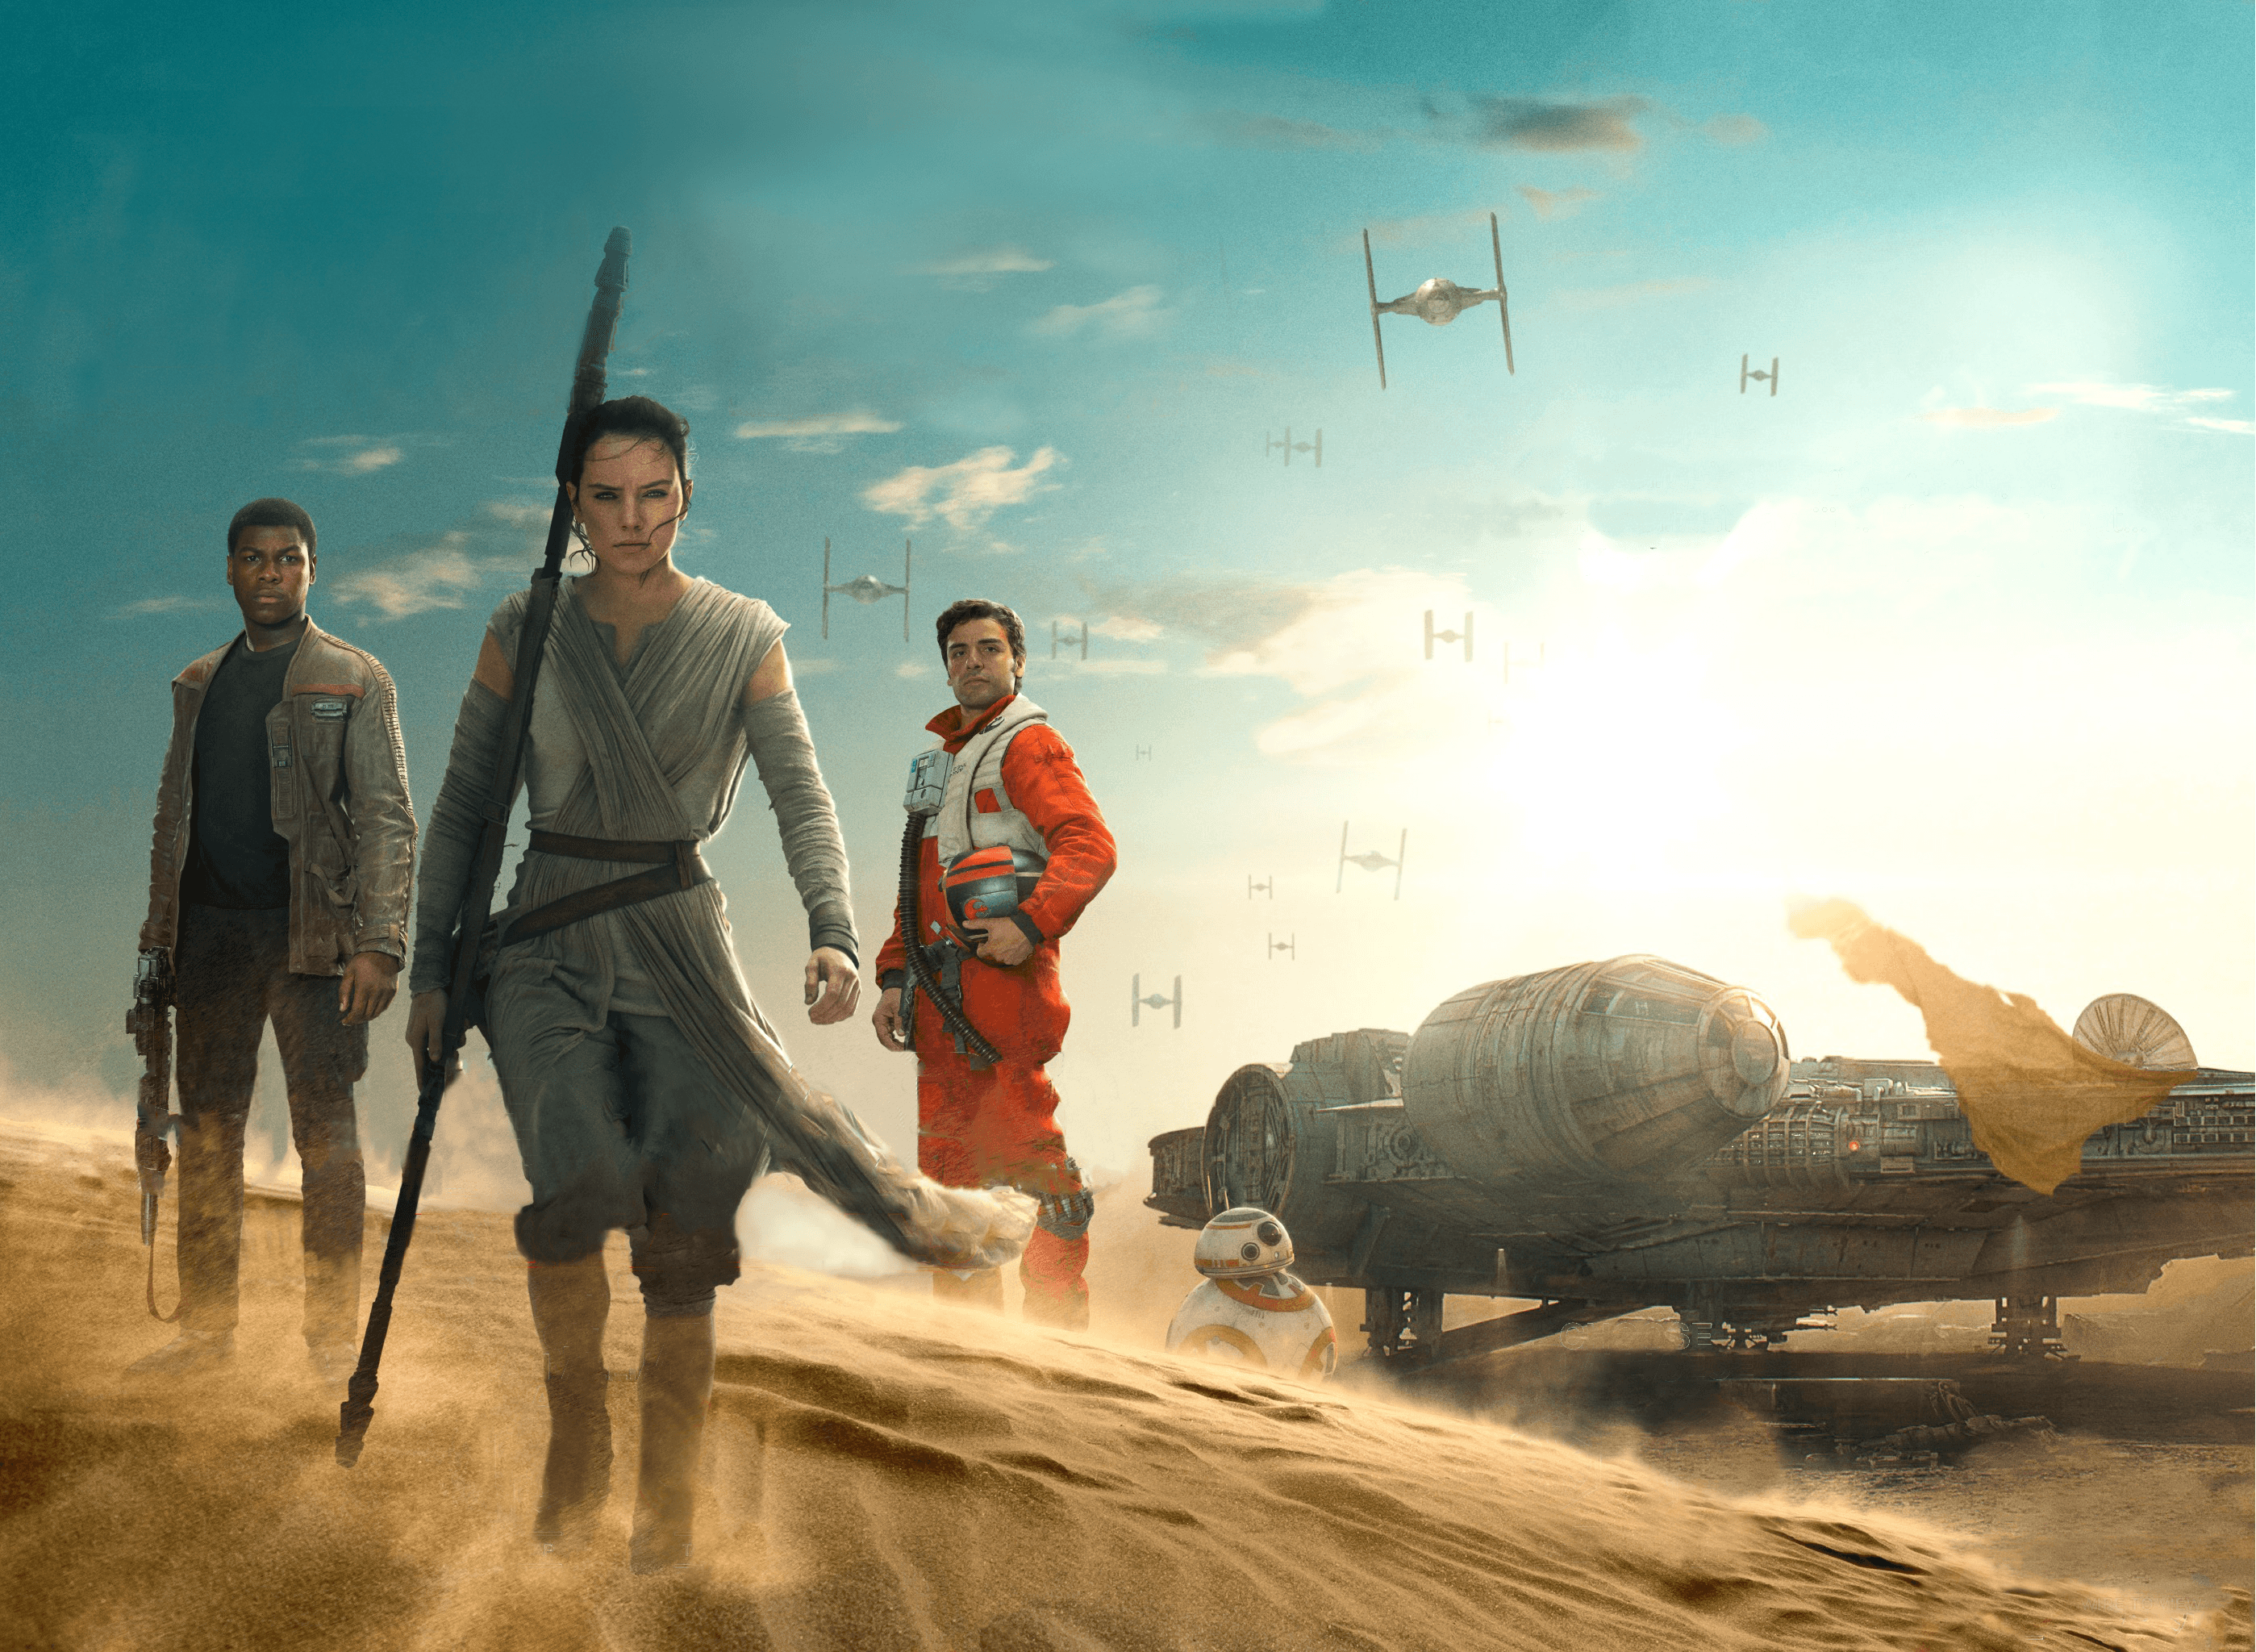 Rey Star Wars Wallpapers Top Free Rey Star Wars Backgrounds